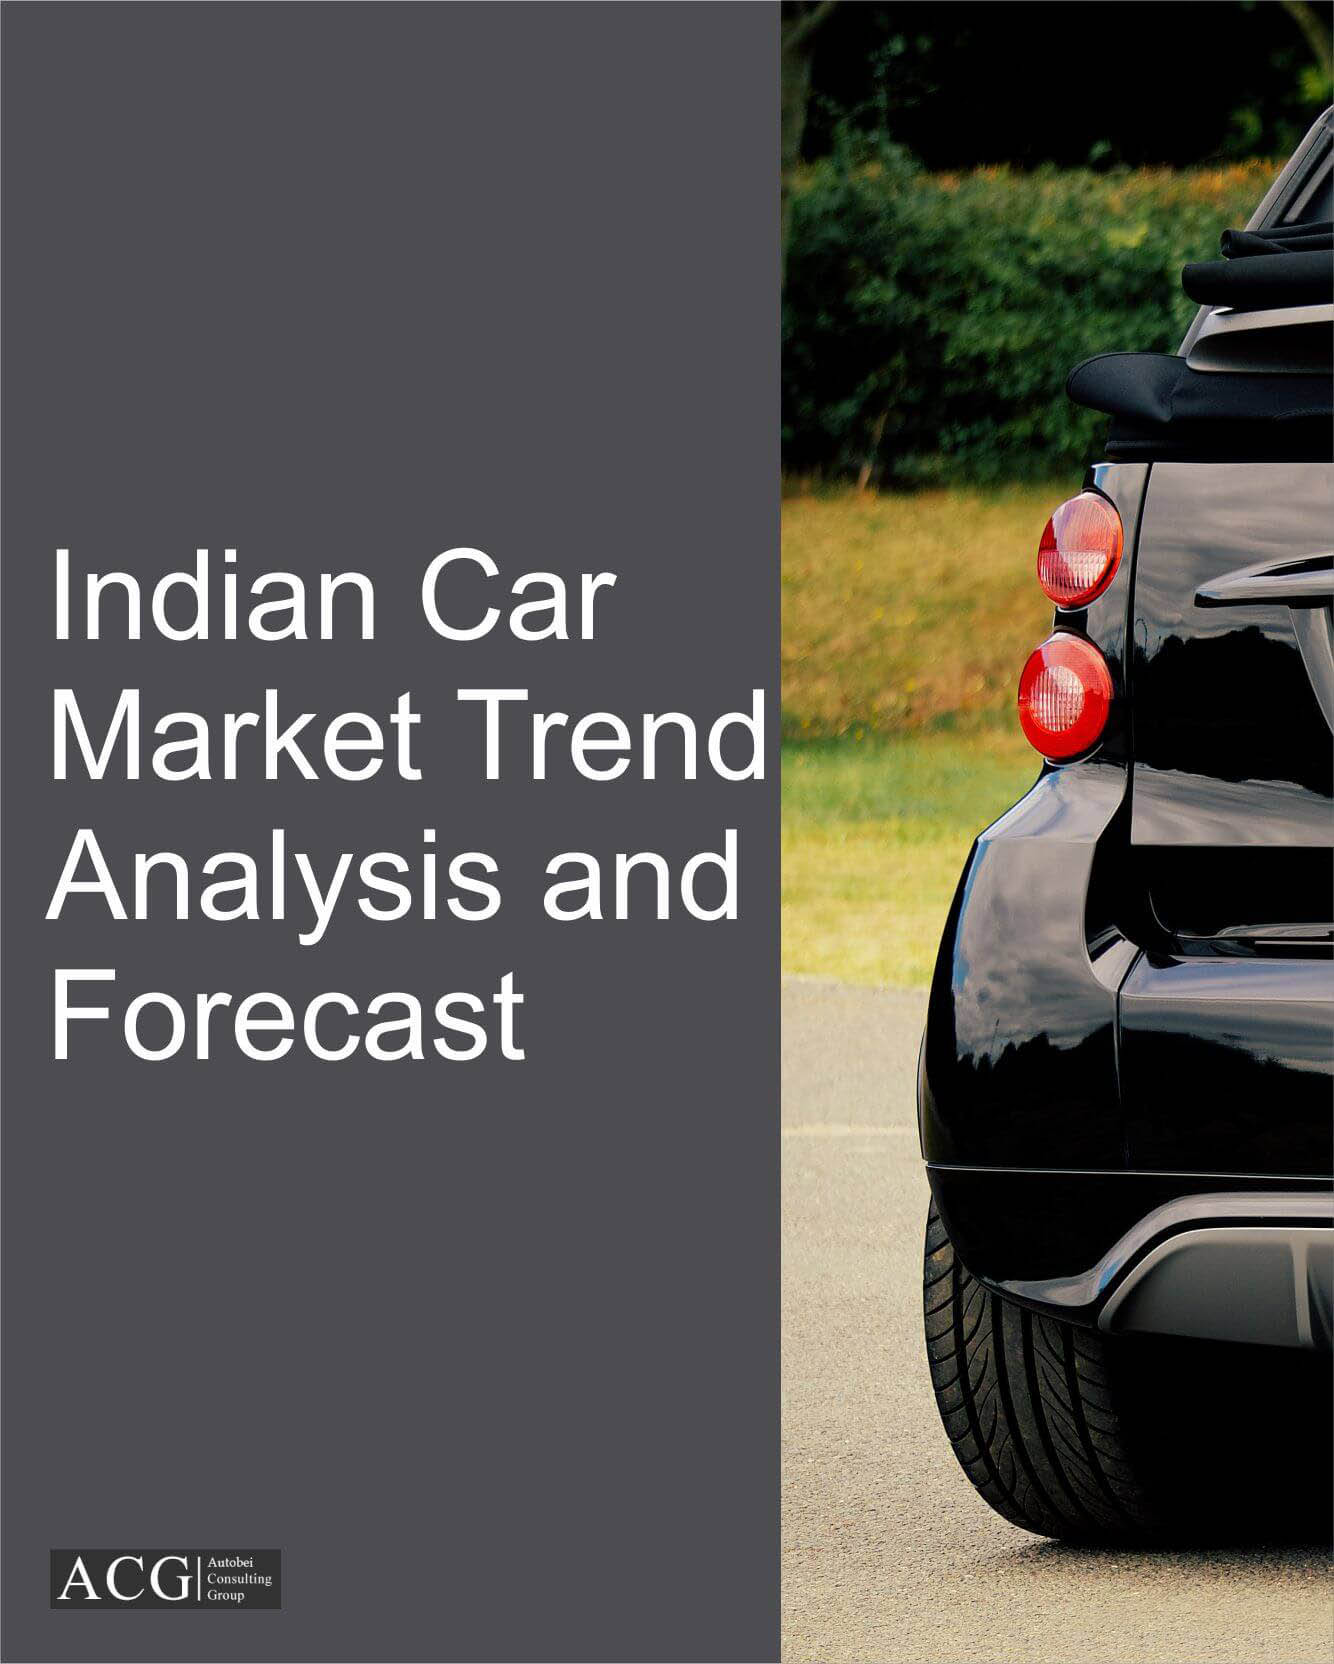 Indian Car Market Trend Analysis and Forecast